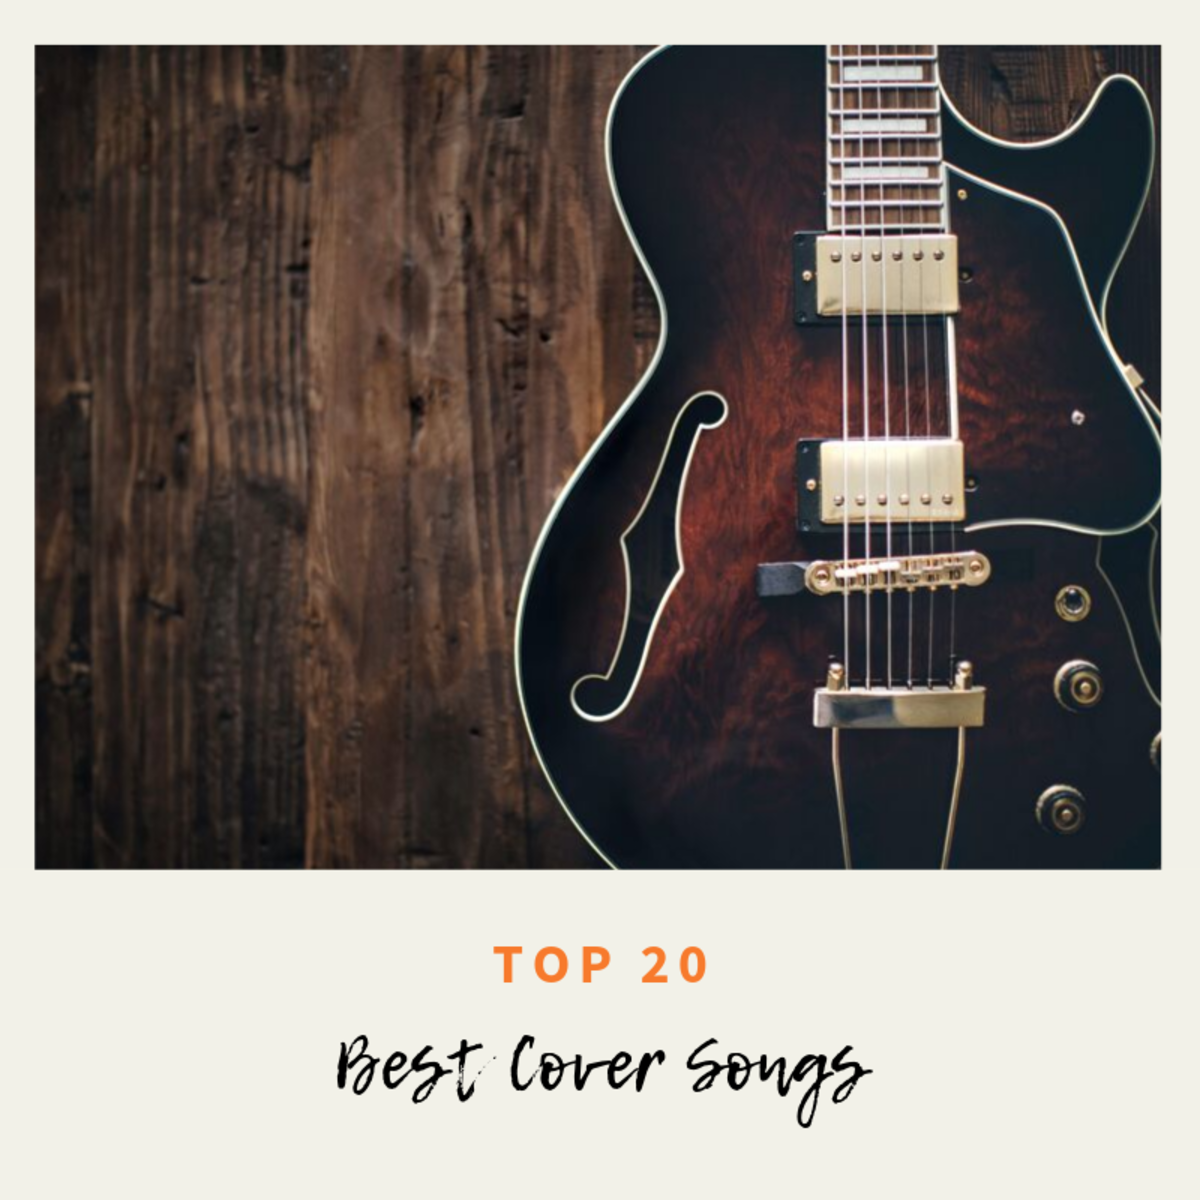 These famous cover songs will remain popular for decades.